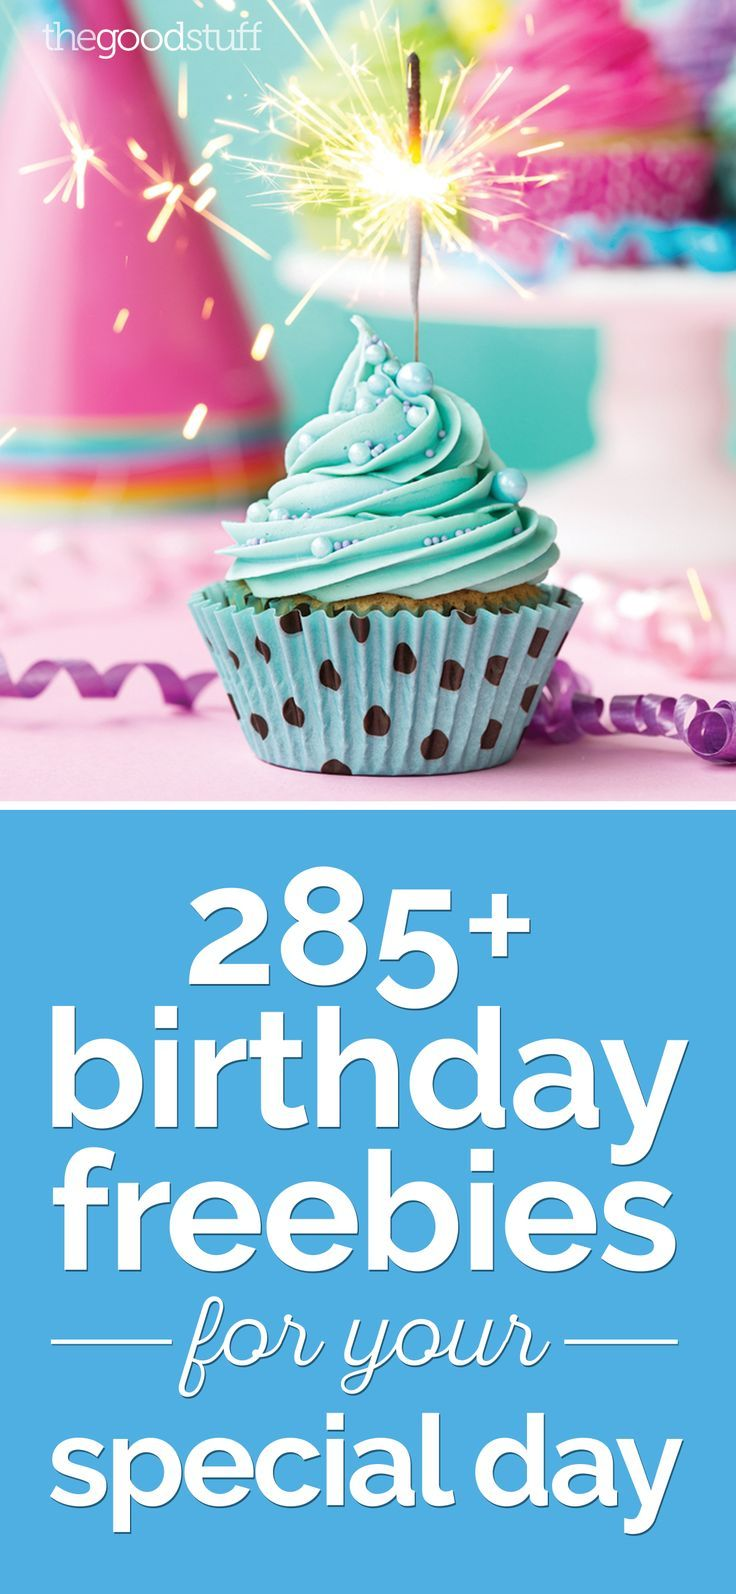 285+ Birthday Freebies for Your Special Day   thegoodstuff